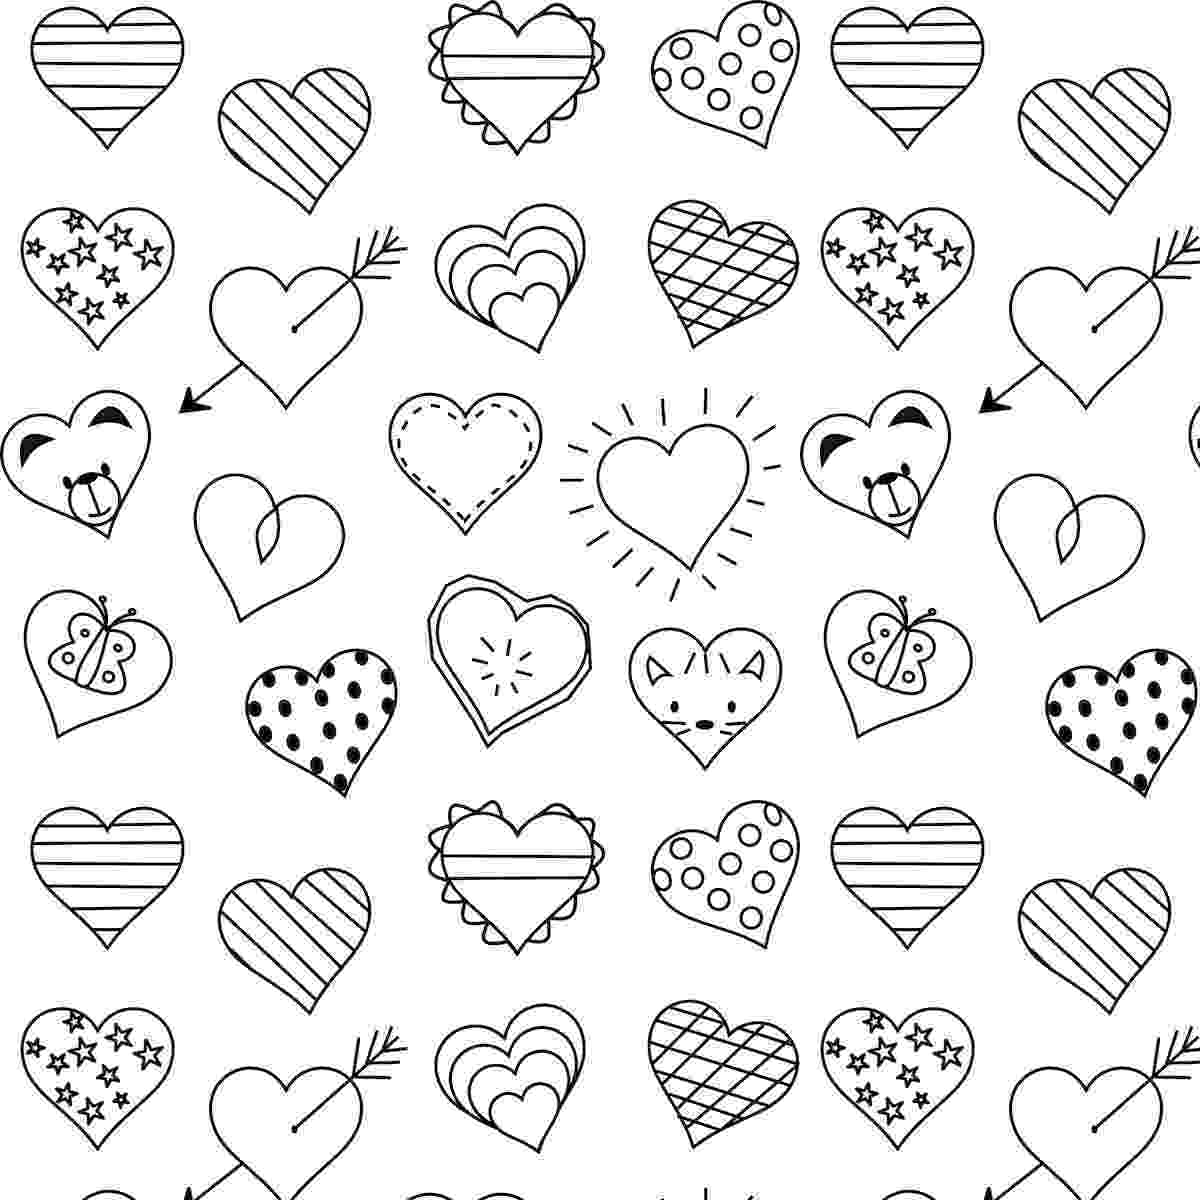 heart coloring page free printable heart coloring page ausdruckbare heart coloring page